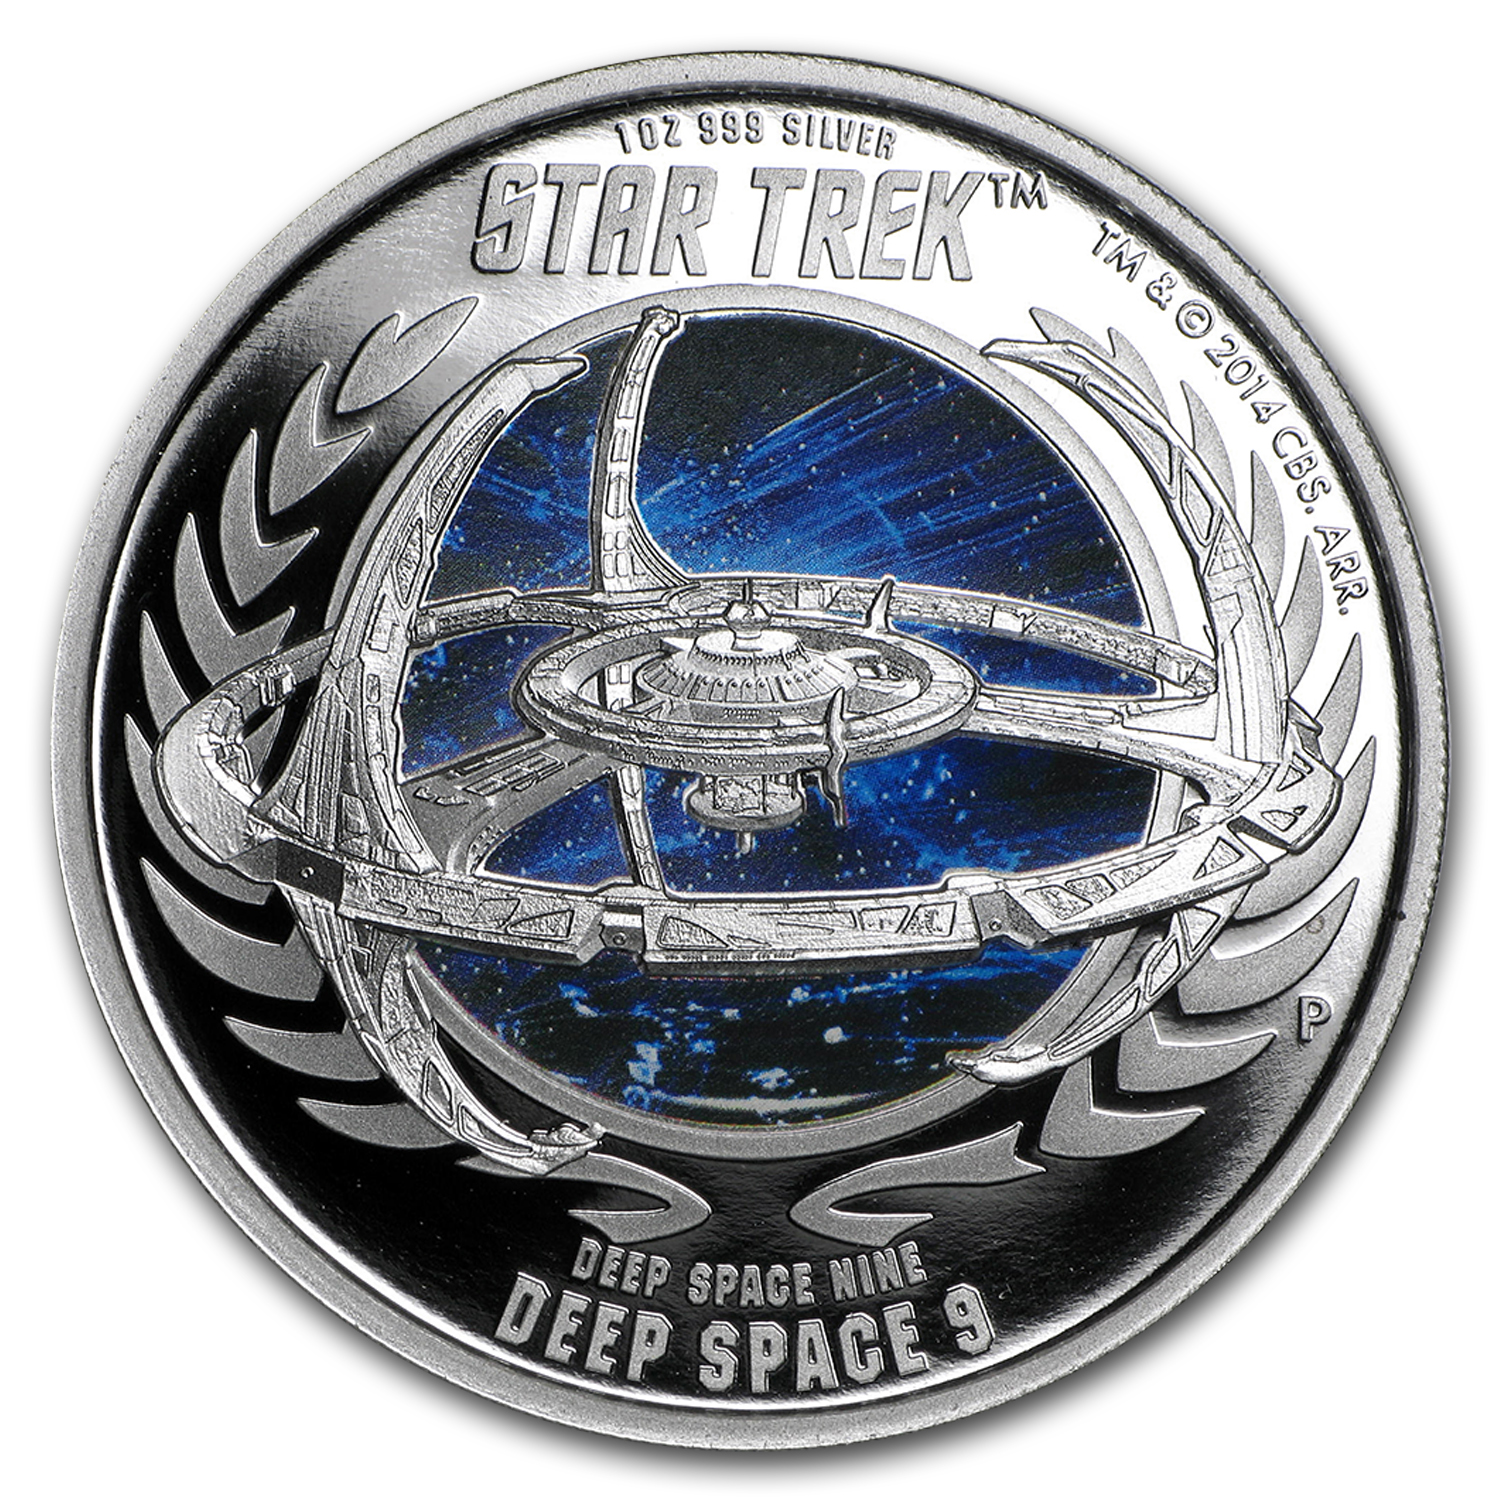 2015 Tuvalu 1 oz Silver Star Trek Proof (Deep Space 9 Station)